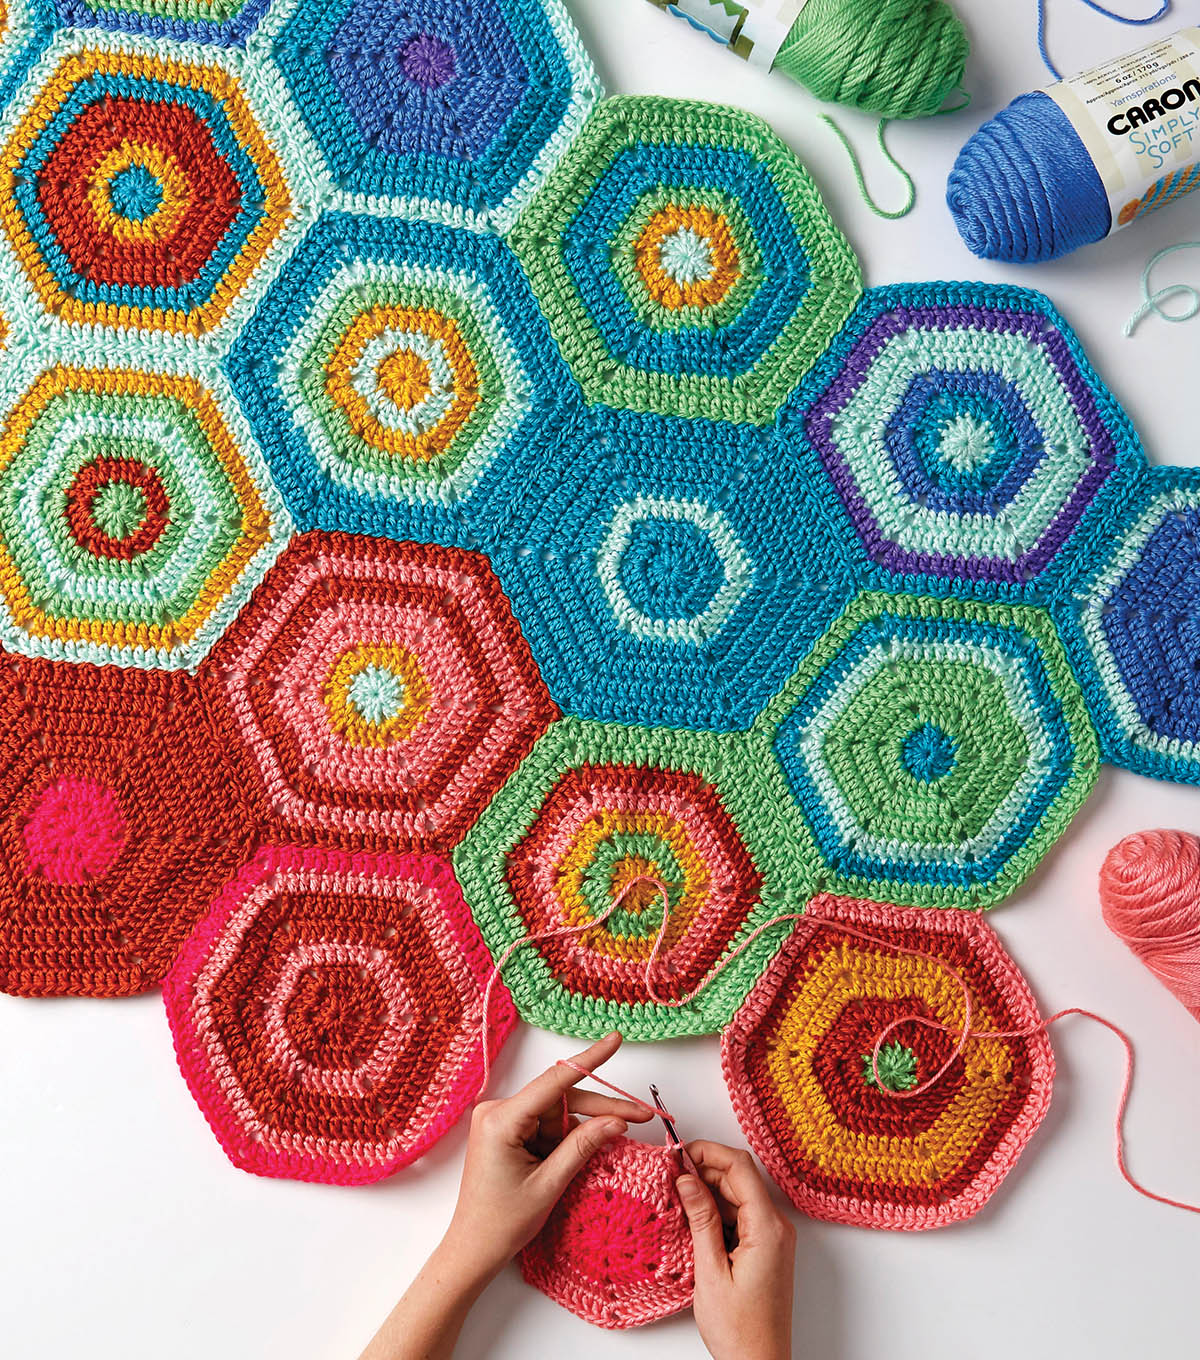 How To Make A One A Day Crochet Hexagon Temperature Blanket Joann